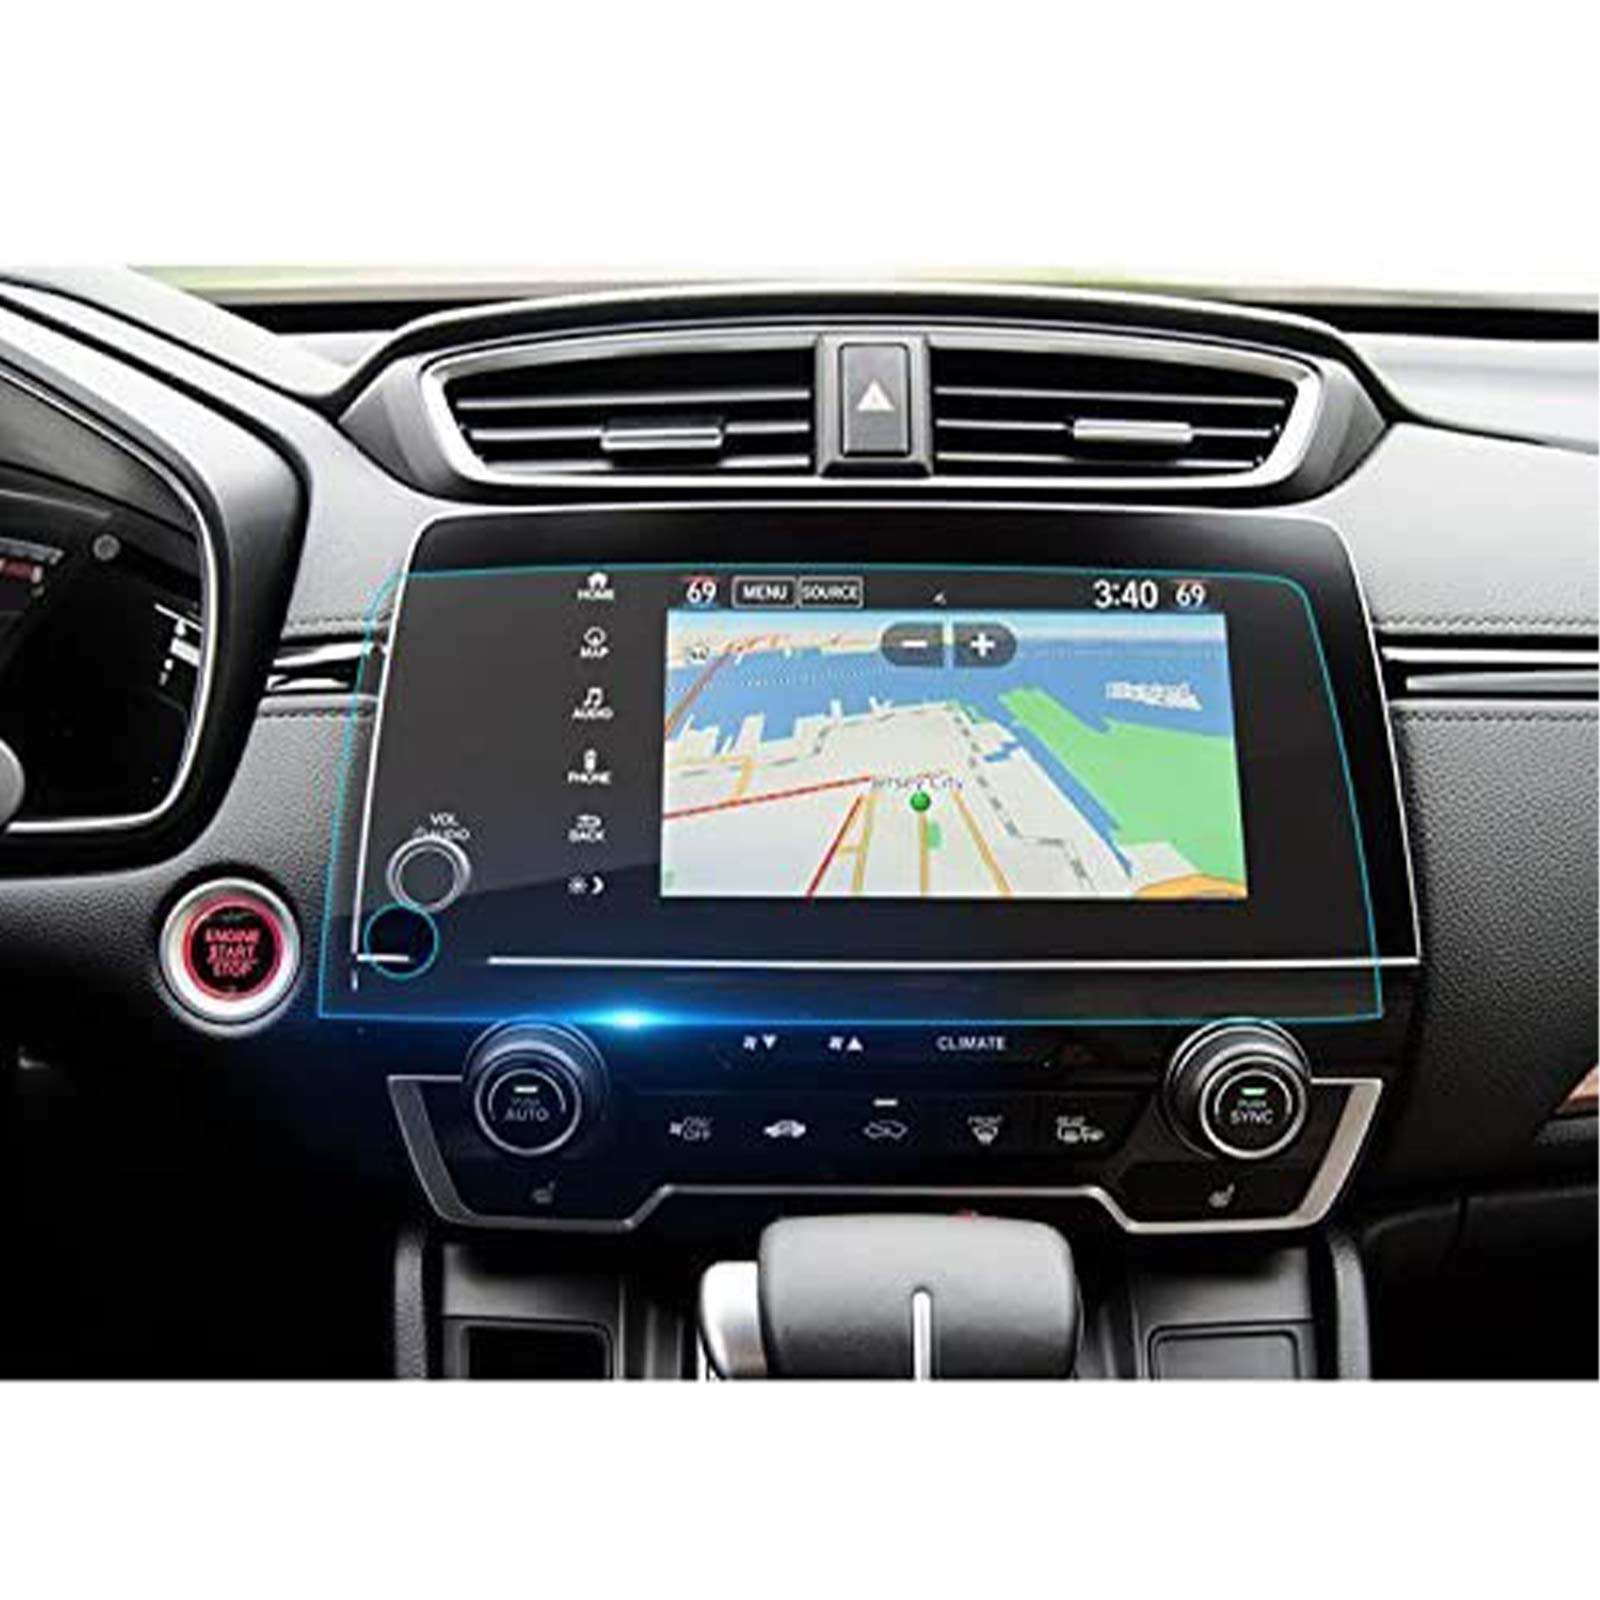 LFOTPP Fit for 2017 2018 2019 2020 2021 CRV EX EX-L Touring 7-Inch Car Navigation Screen Protector, Clear Tempered Glass Infotainment Display In-Dash Center Touch Stereo Screen Protector